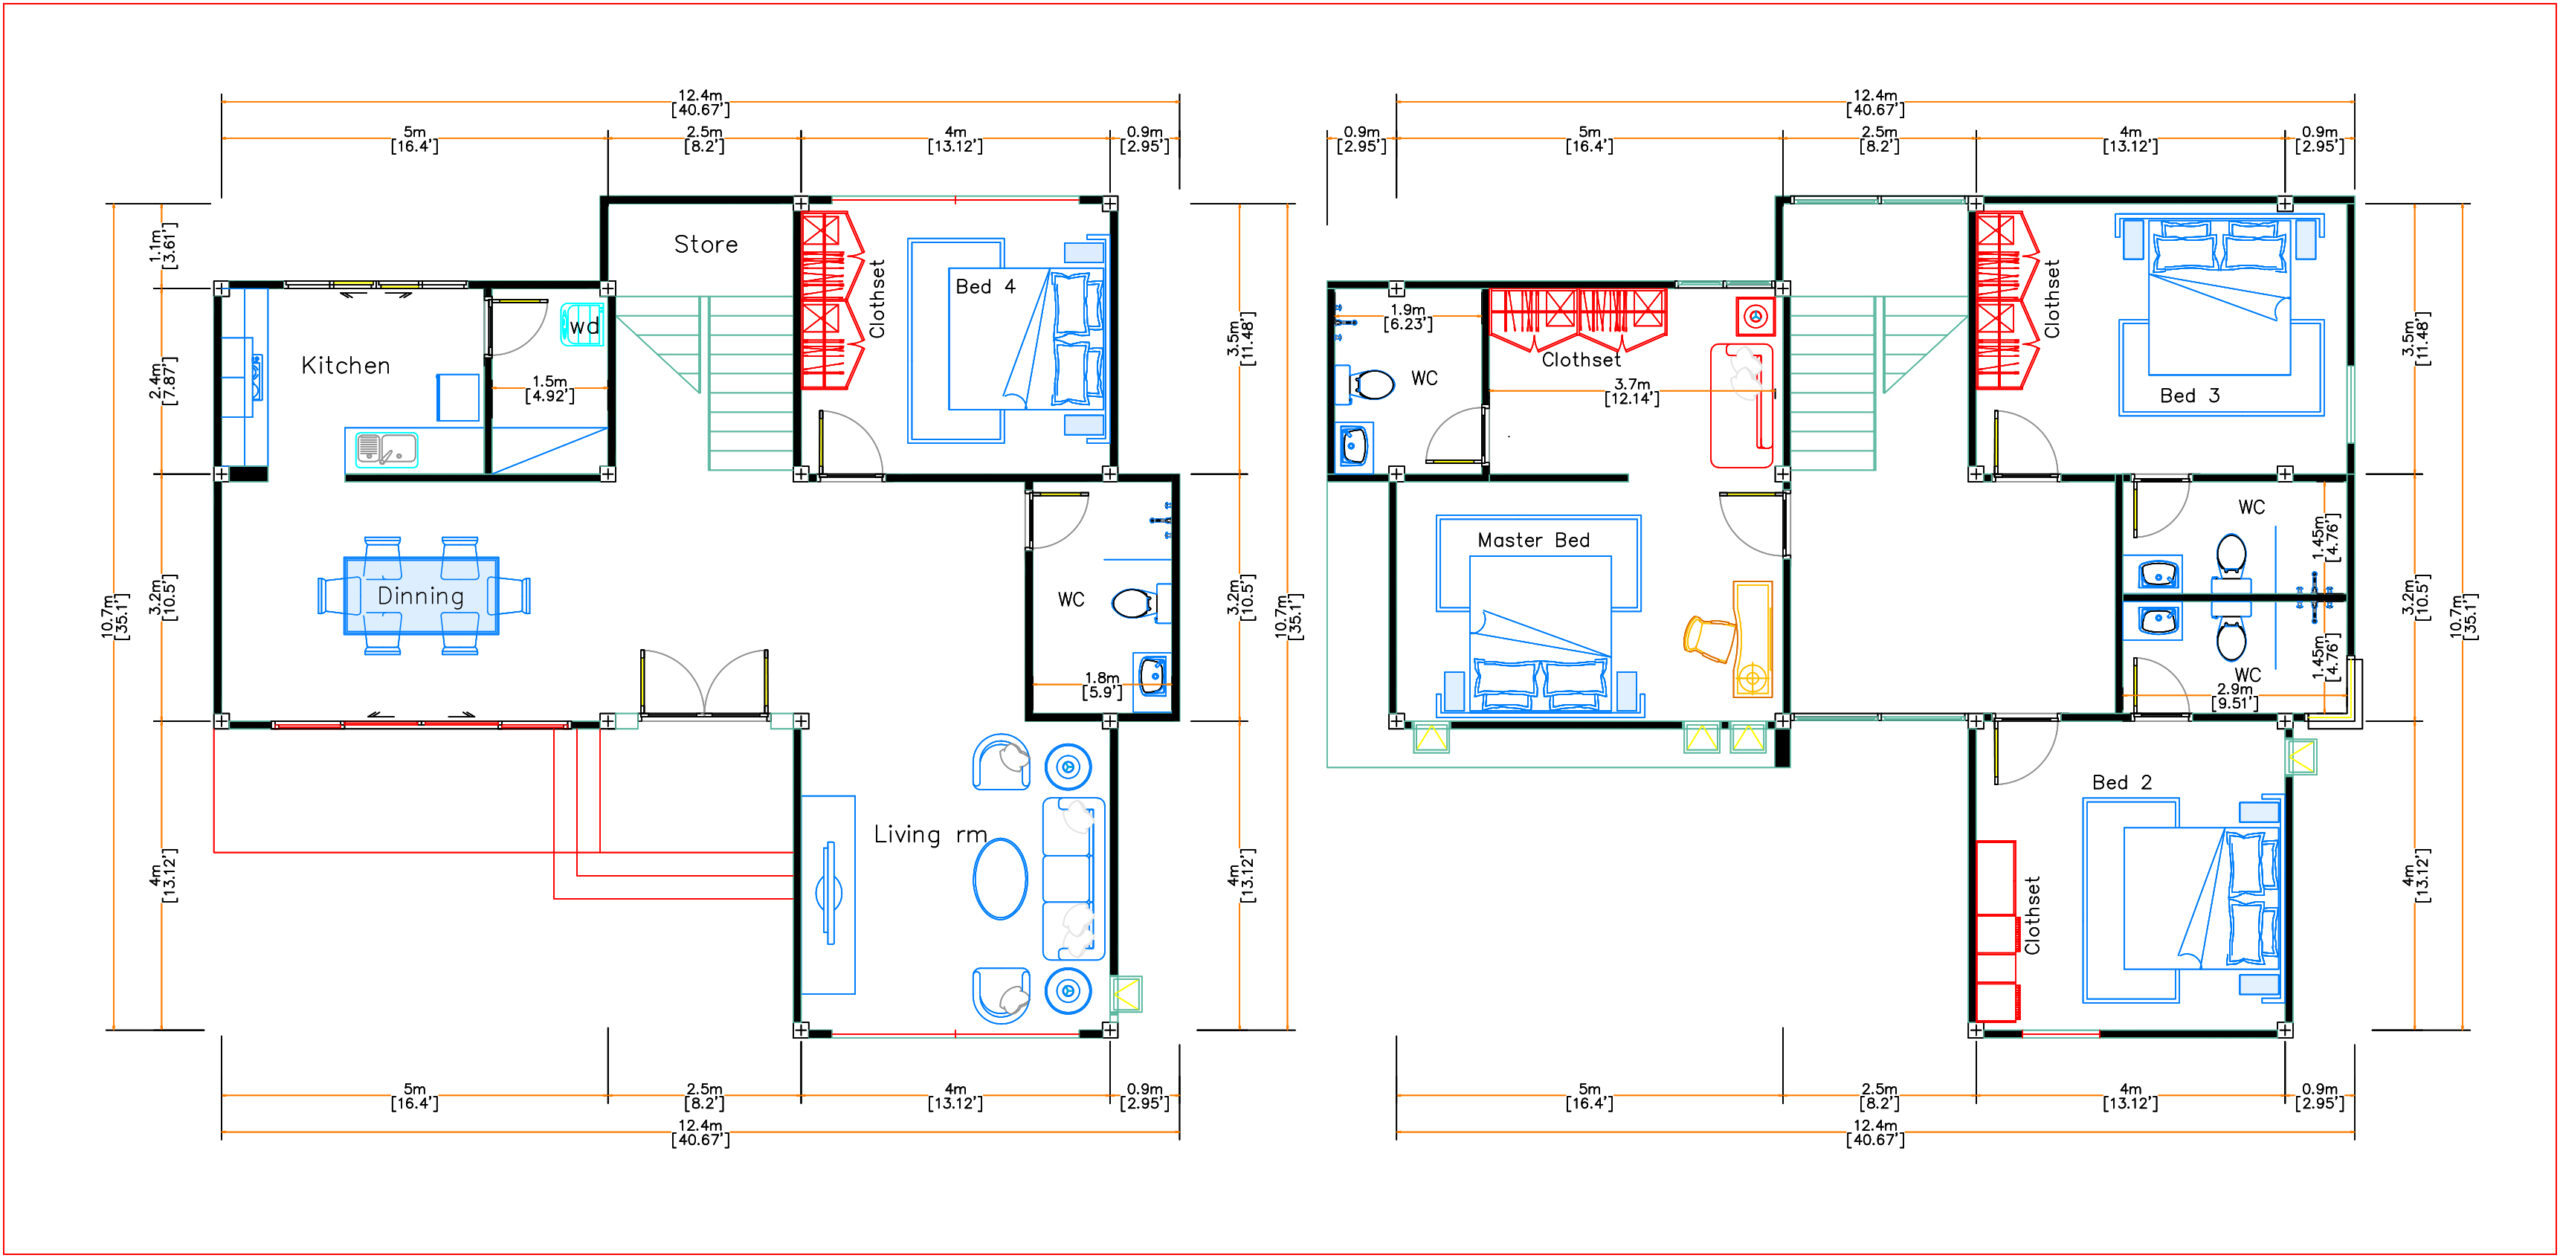 House Plans 12.4x11 Meter 41x35 Feet 4 Beds layout floor plan